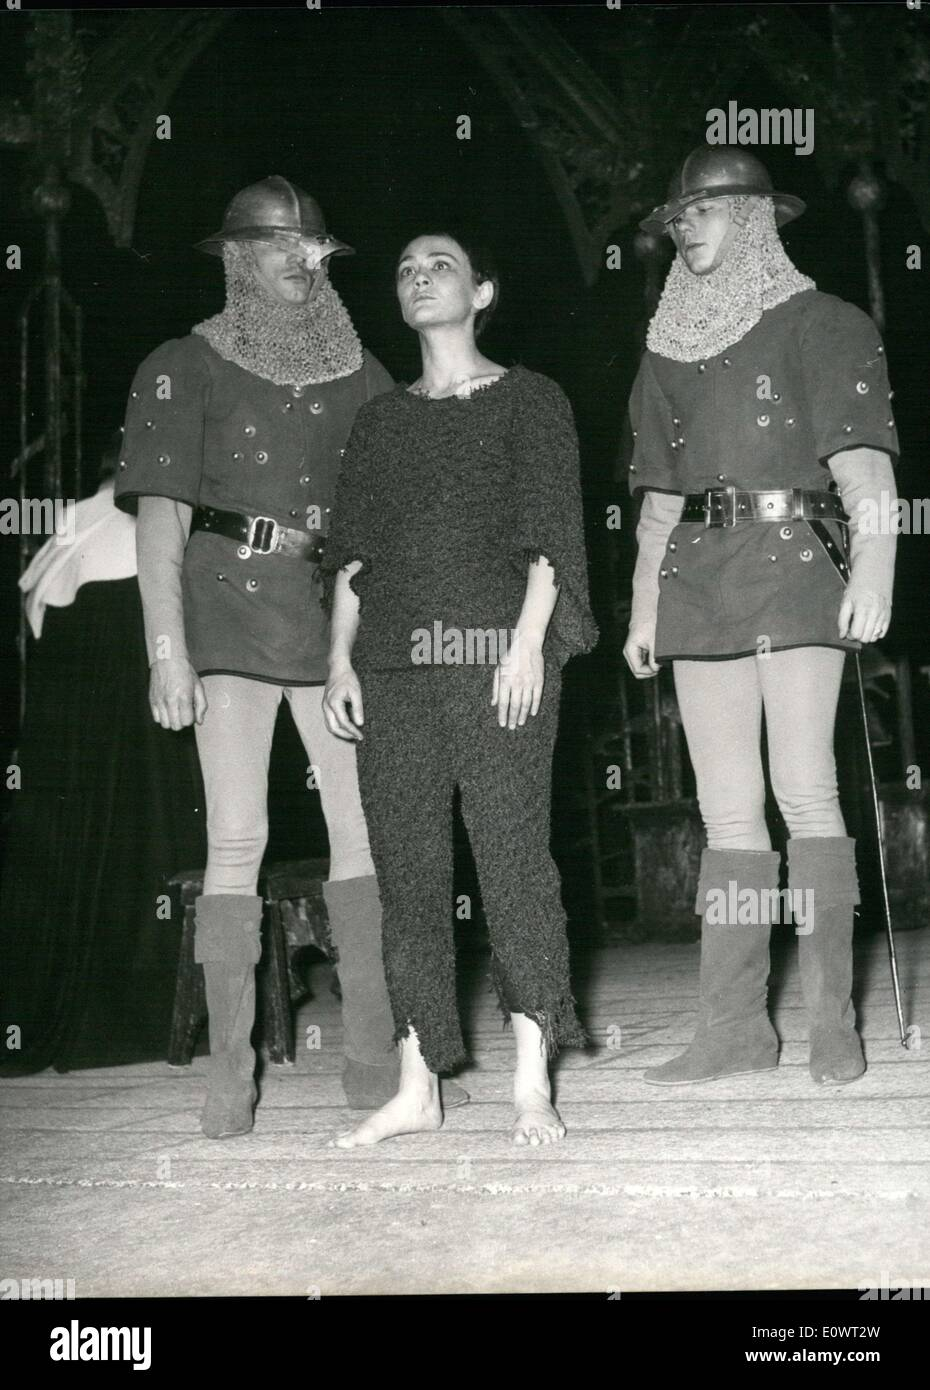 Apr. 04, 1964 - At the Monparnasse-Gaston Bati Theatre, they are restaging George Bernard Shaw's ''Saint - Stock Image